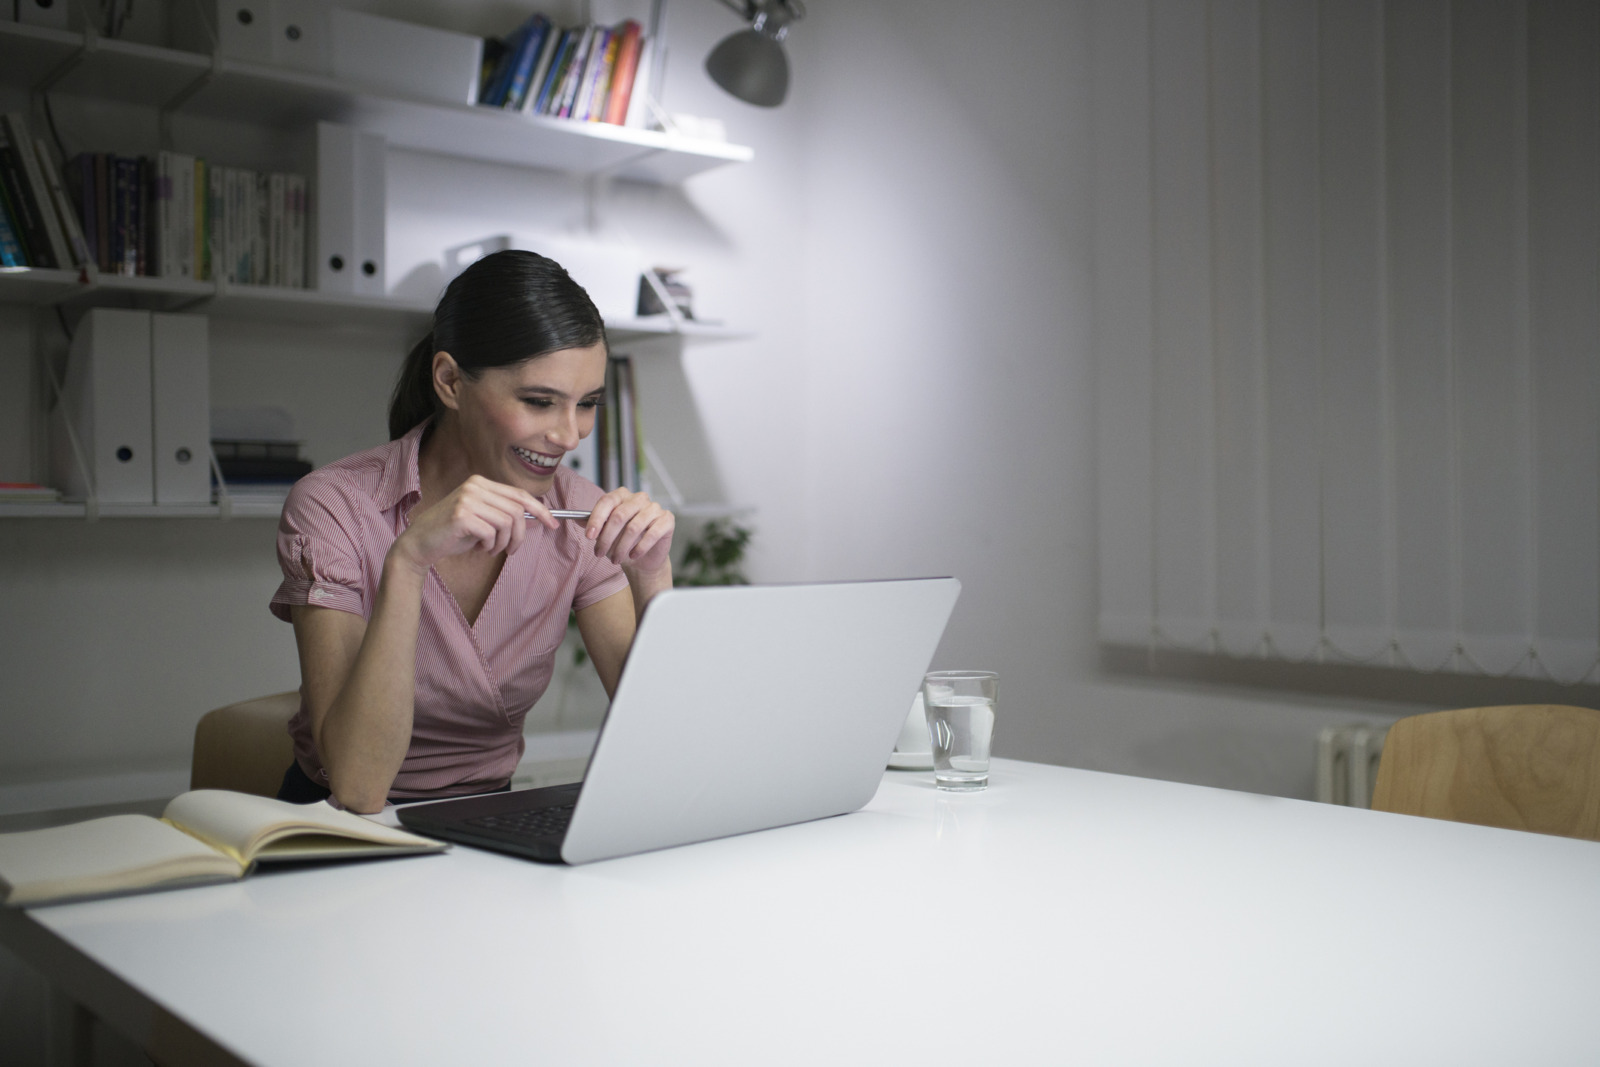 The Complete List of Video Interview Questions to Ask Remote Workers